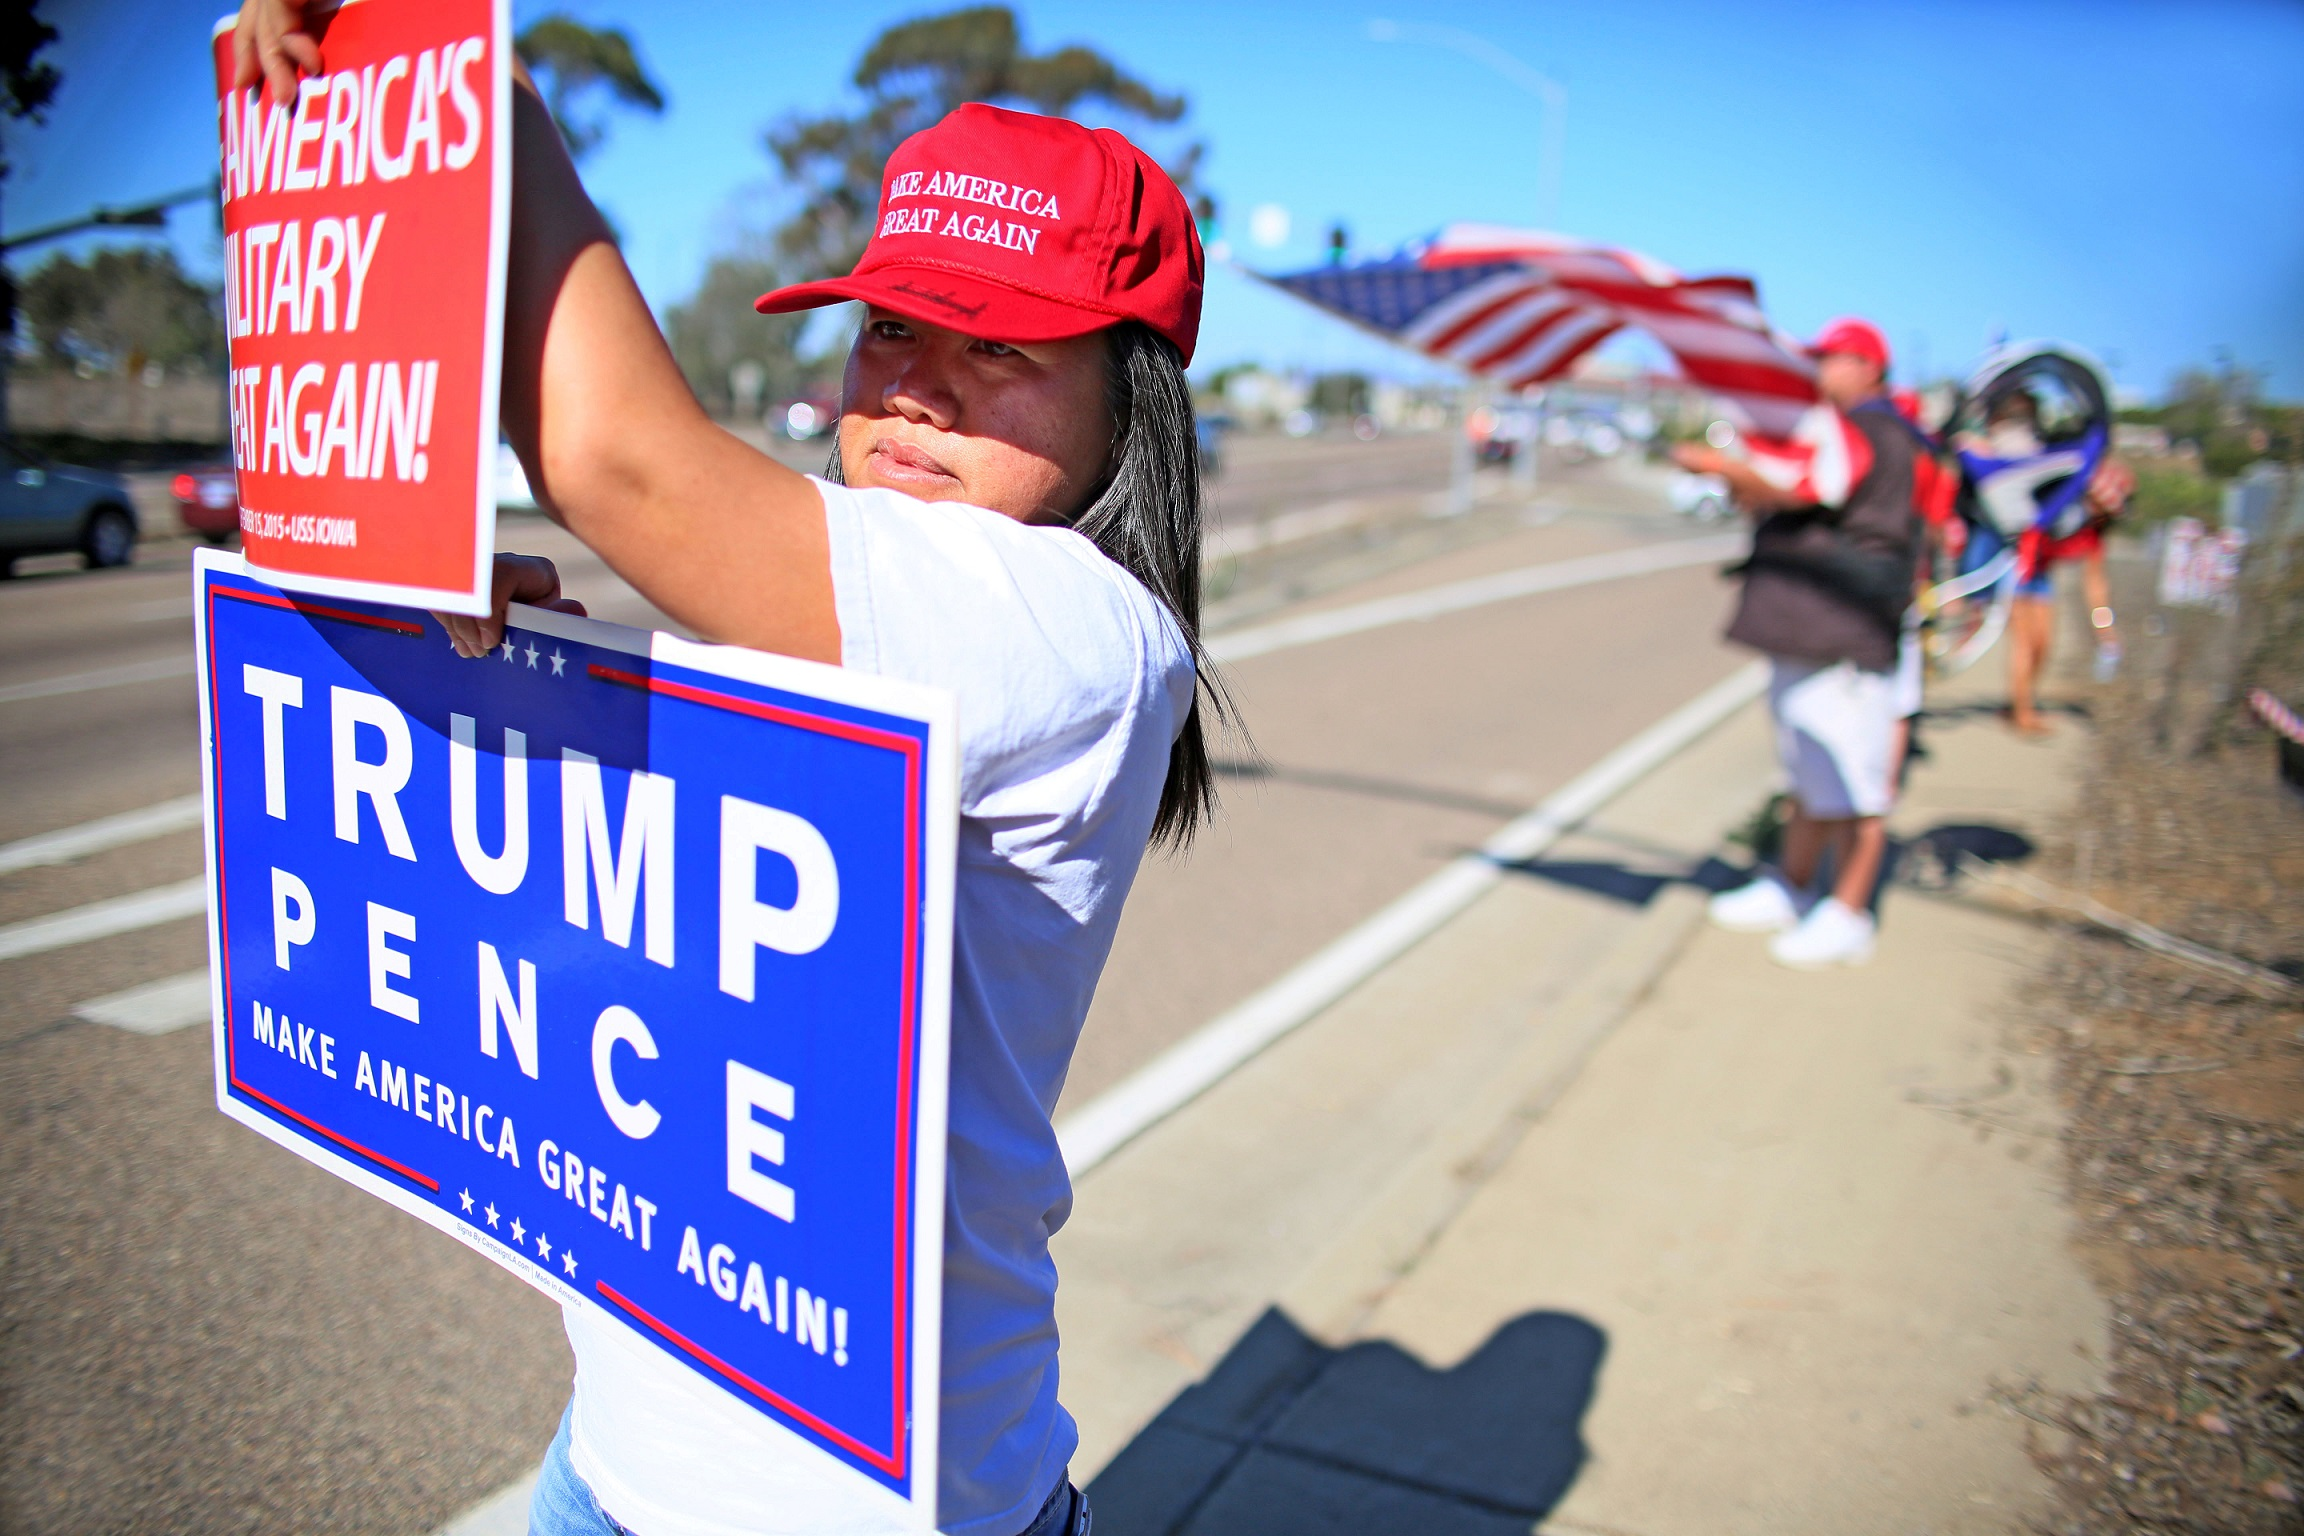 Demonstrator Ly Kou holds a sign along with others in support of President elect Donald Trump outside of Camp Pendleton in Oceanside, California U.S. November 11, 2016. REUTERS/Sandy Huffaker - RTX2TA8C